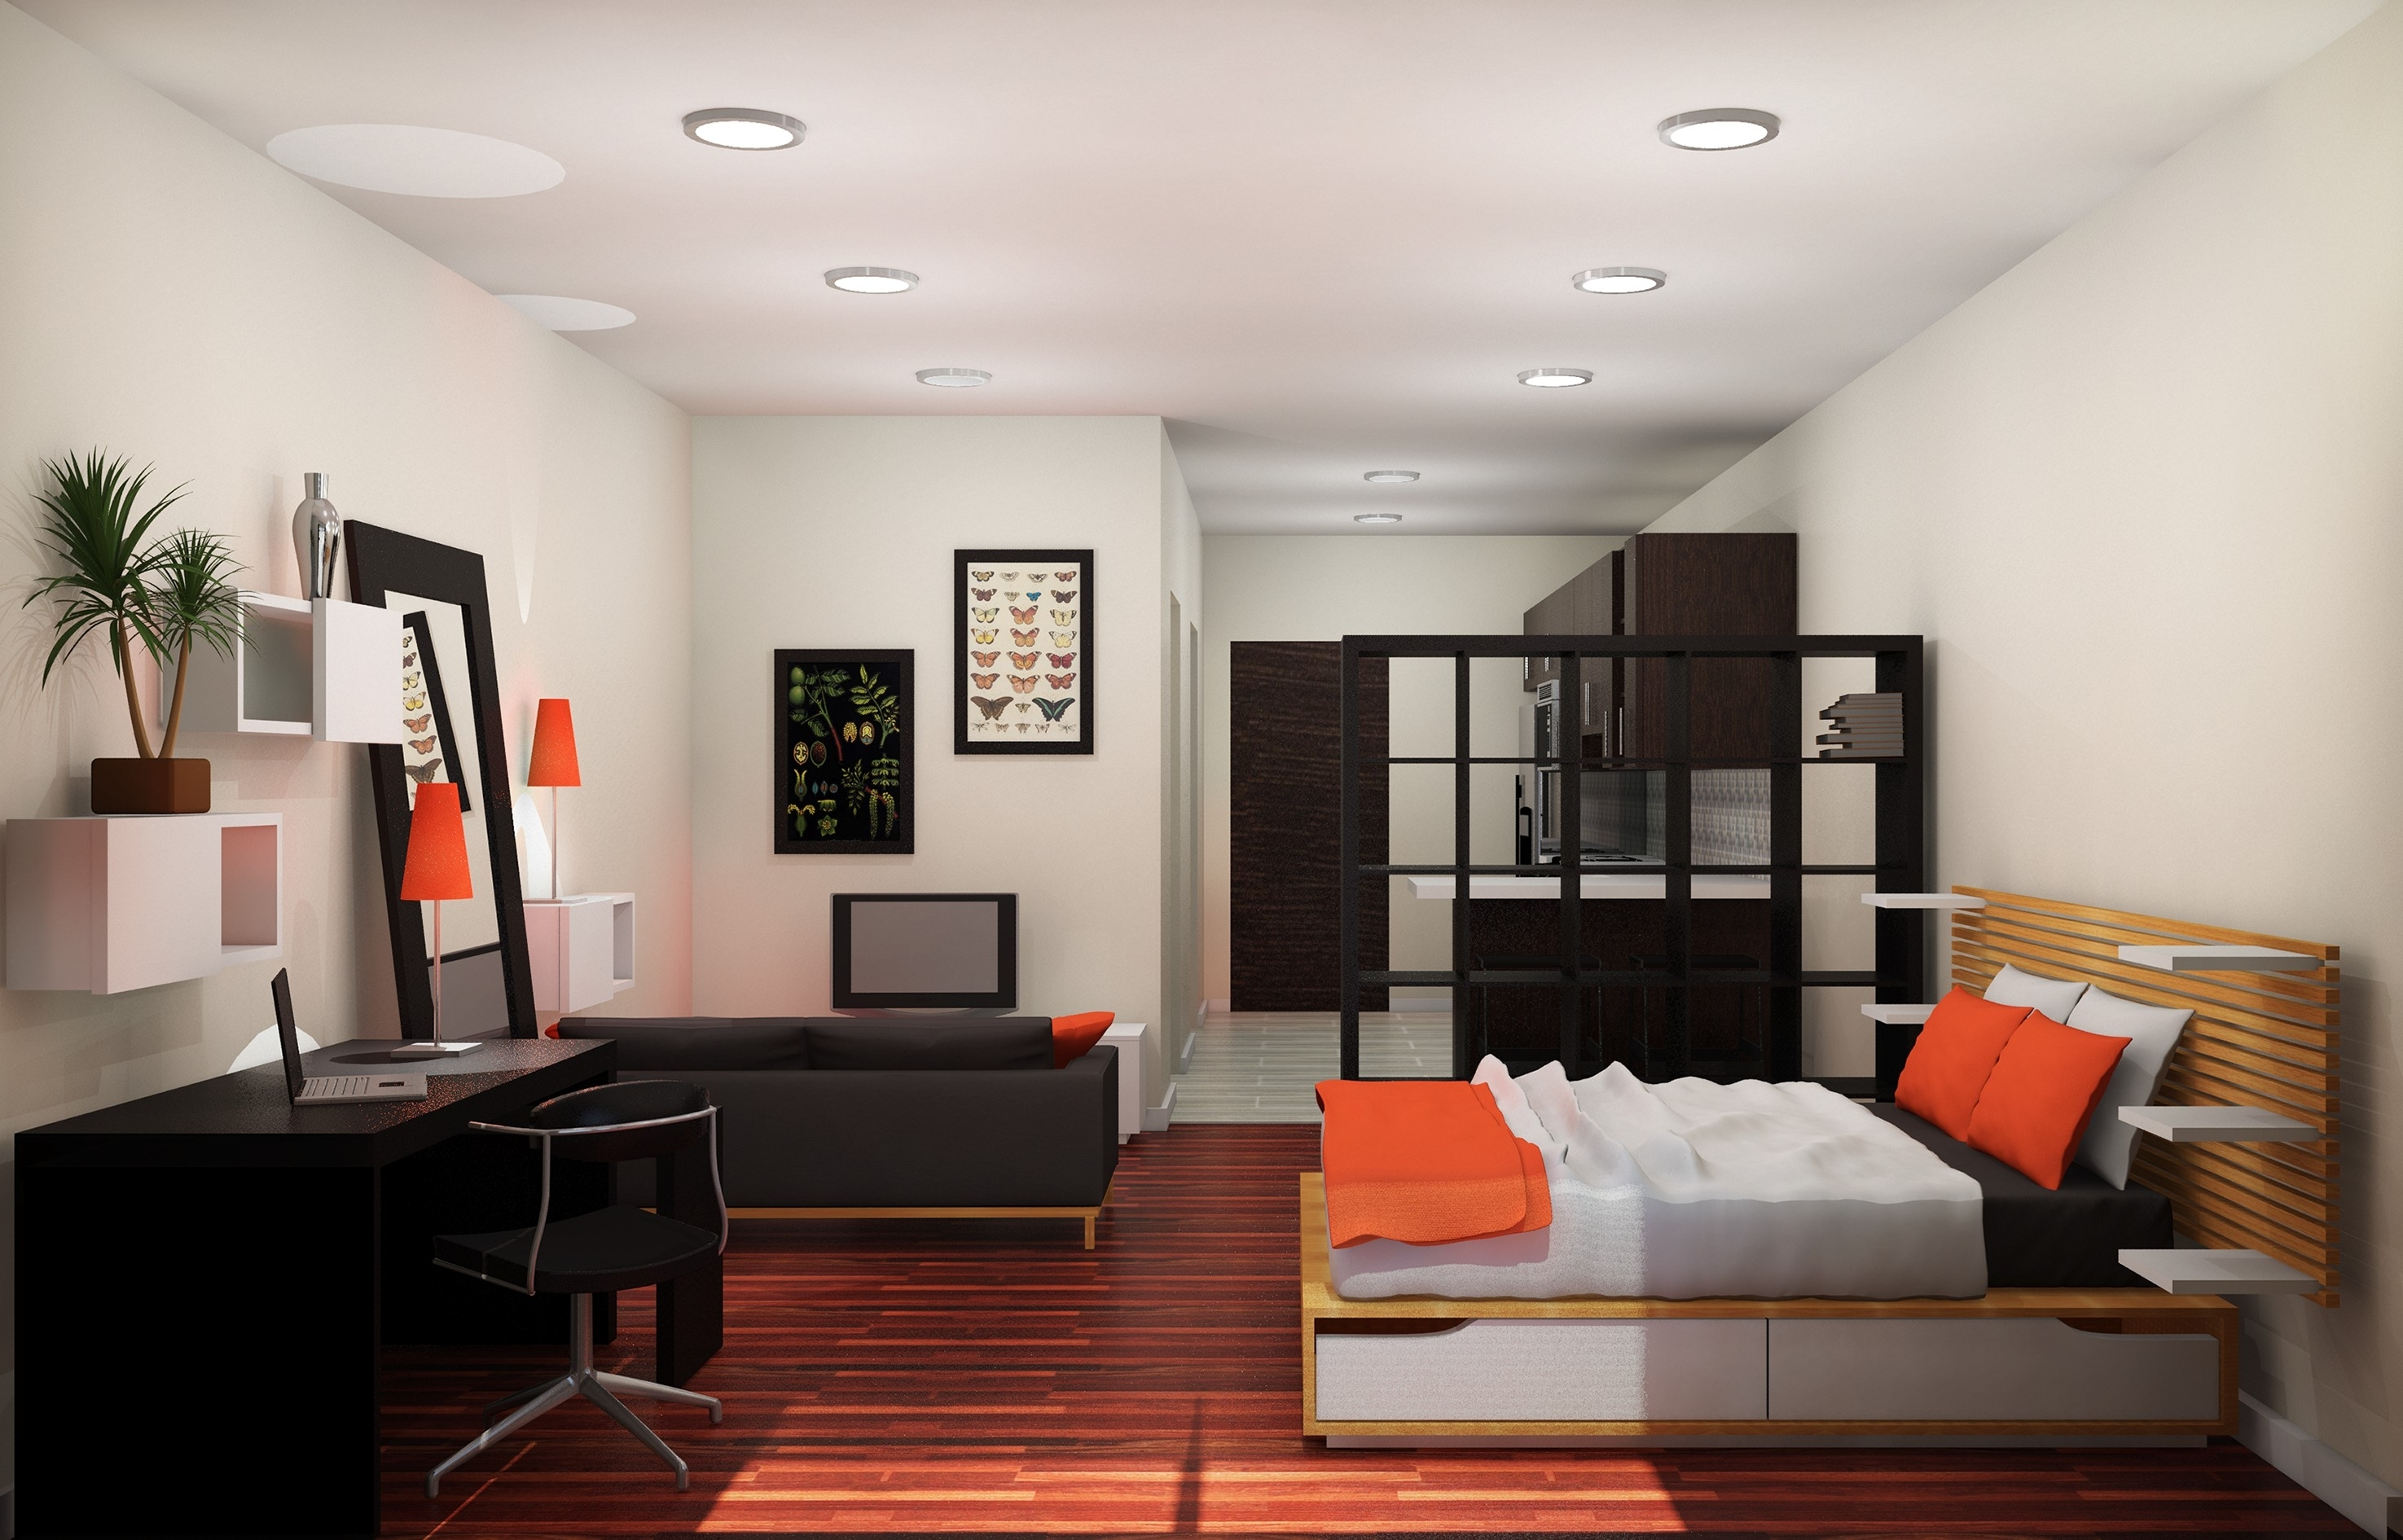 Studio Apartment Design Tips And Ideas Intended For Small Apartment  Furniture It Is Important To Have